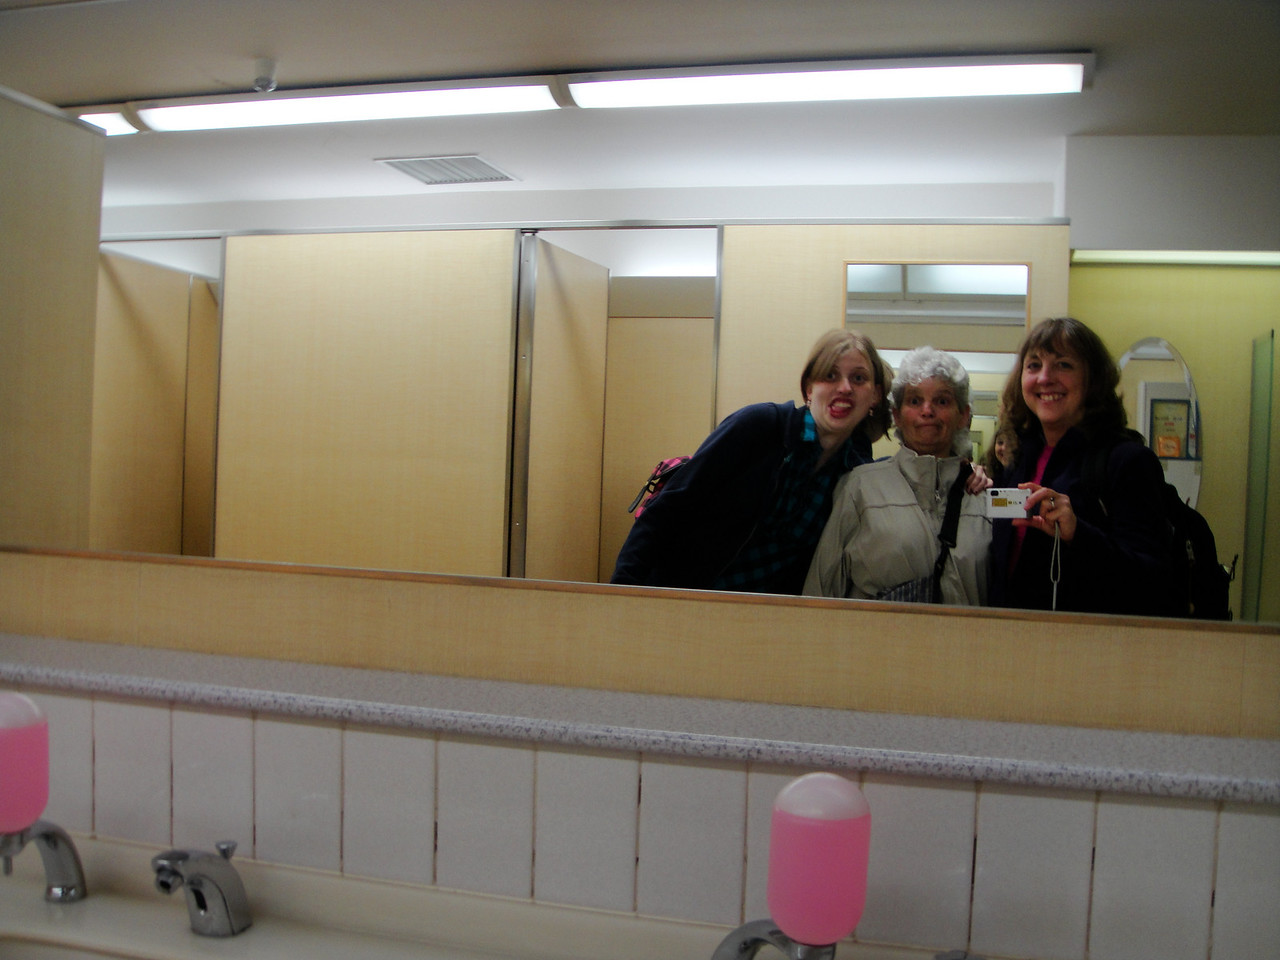 When we were tired of not buying, we played in the bathroom. hehe